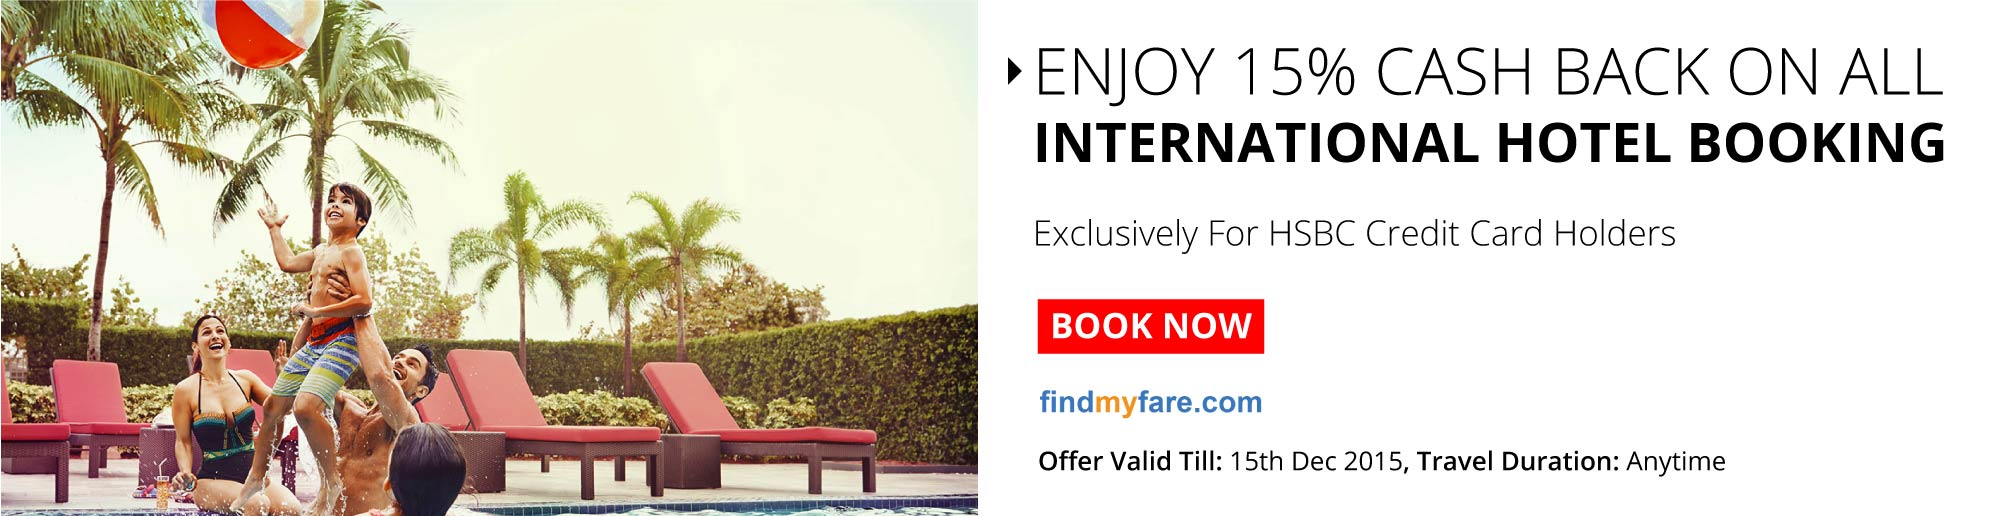 Cash Back on your International hotel booking. Hurry up! Book now!